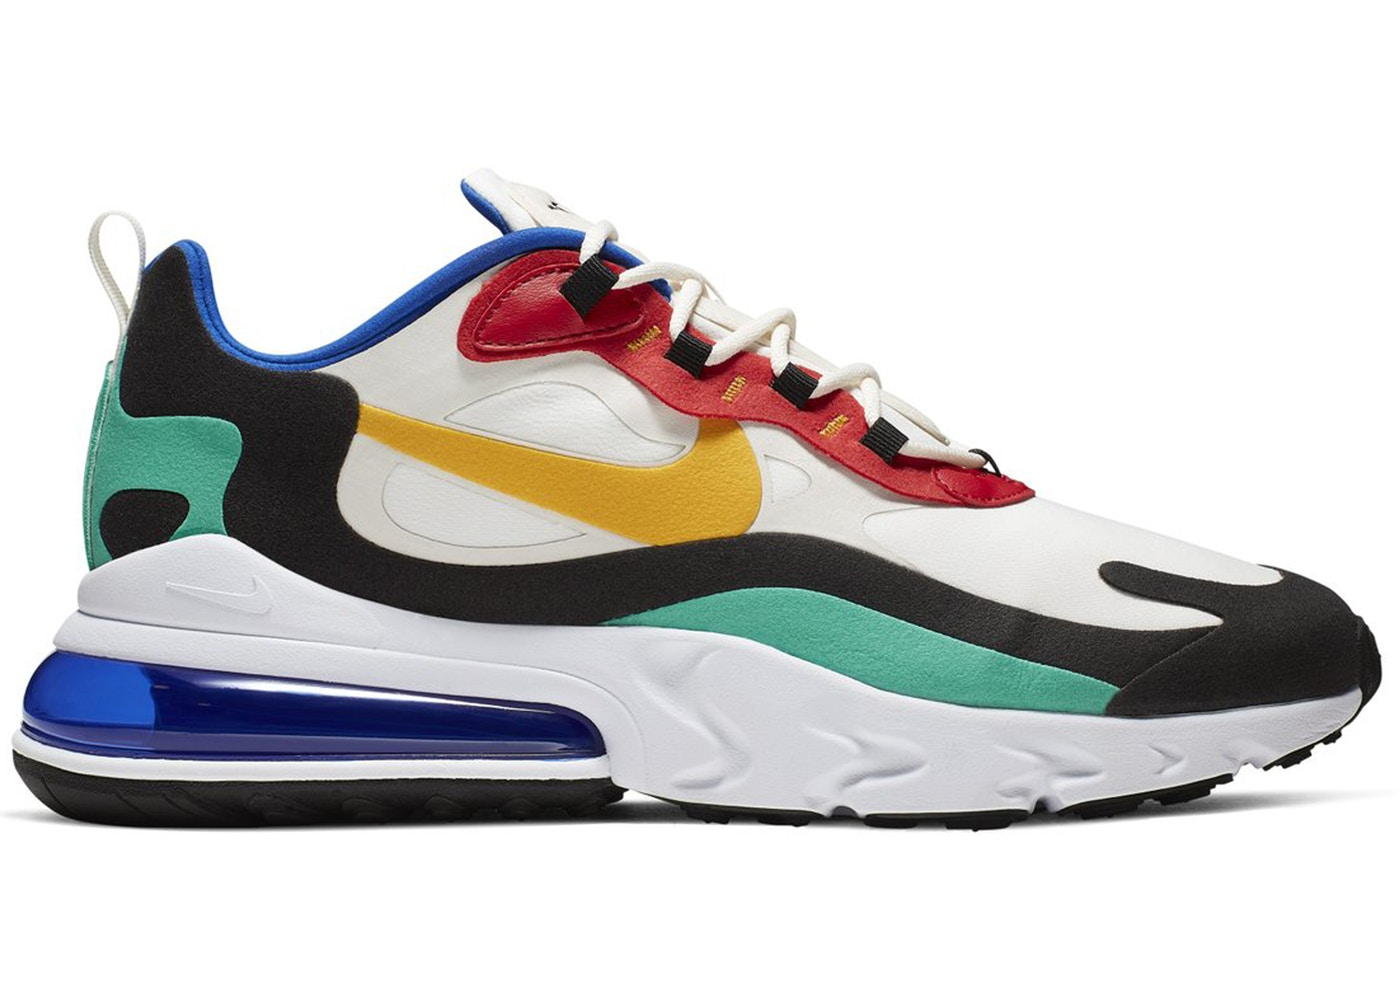 Sneaker in primary colors